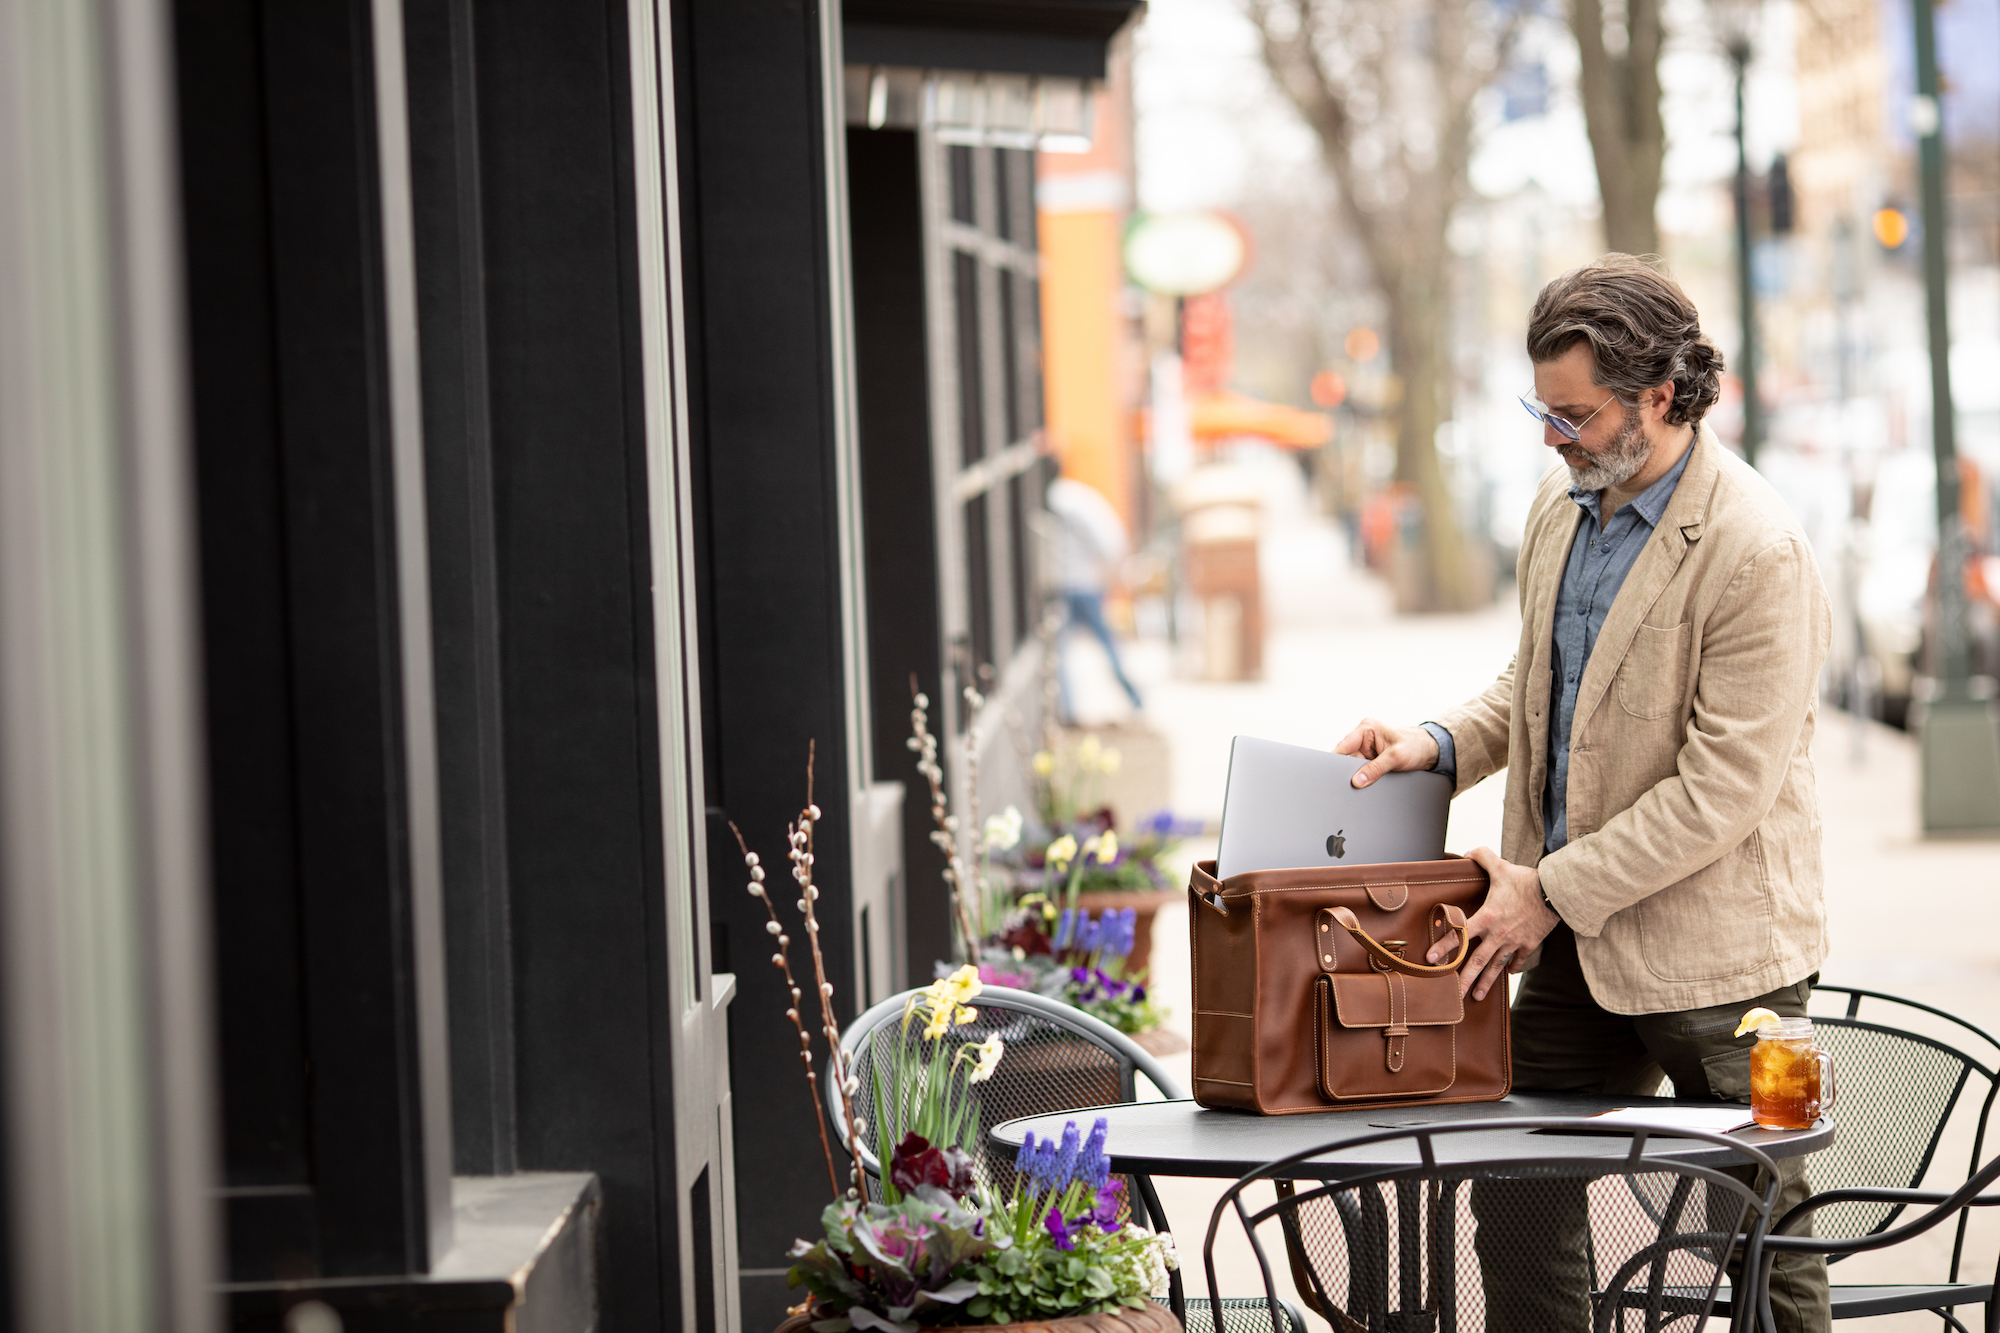 New leather MacBook bags from Pad & Quill are here